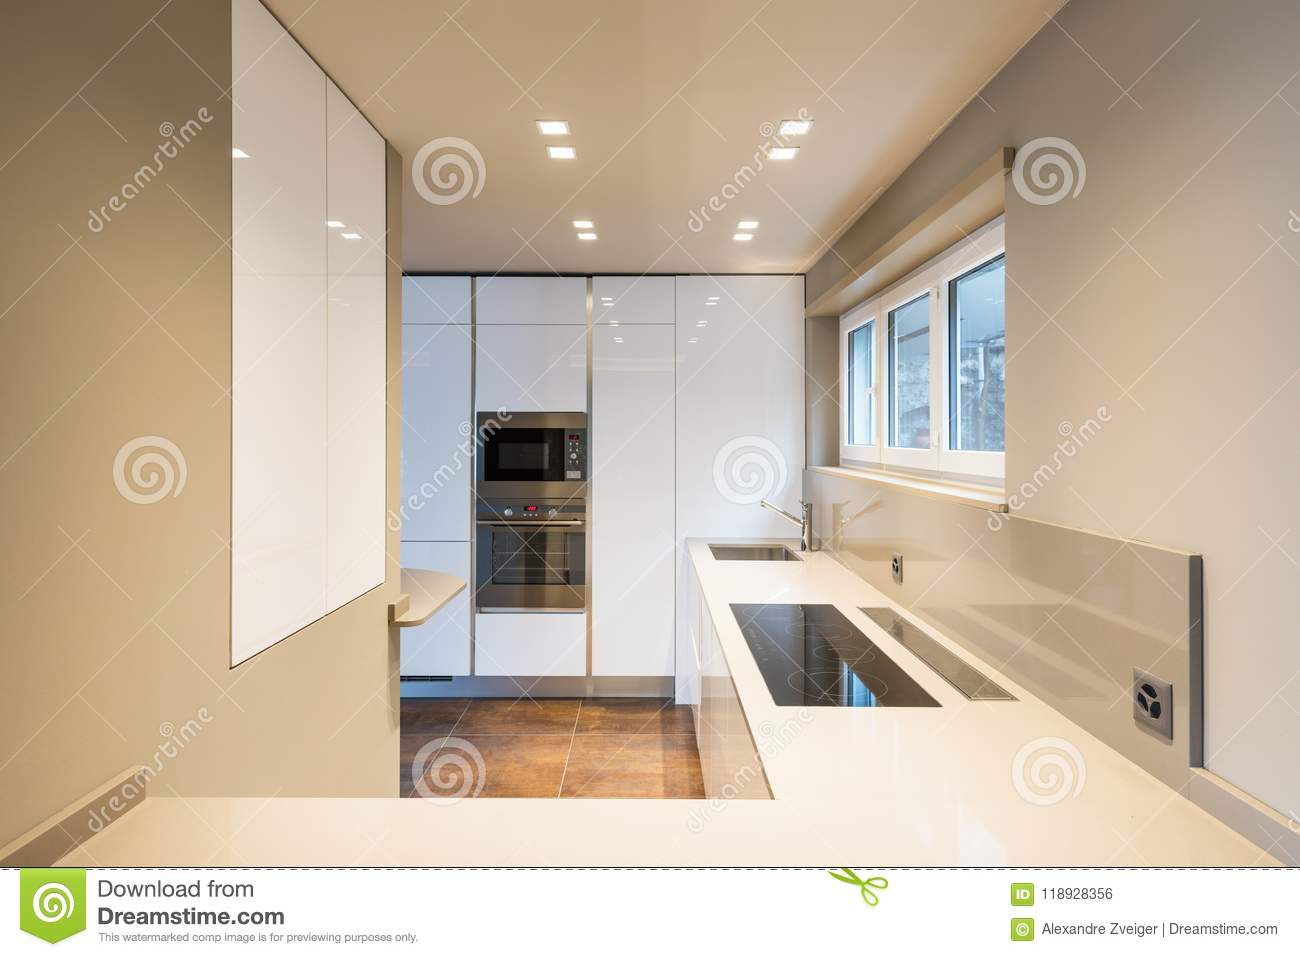 Kitchen with modern white furniture and latest generation appliances